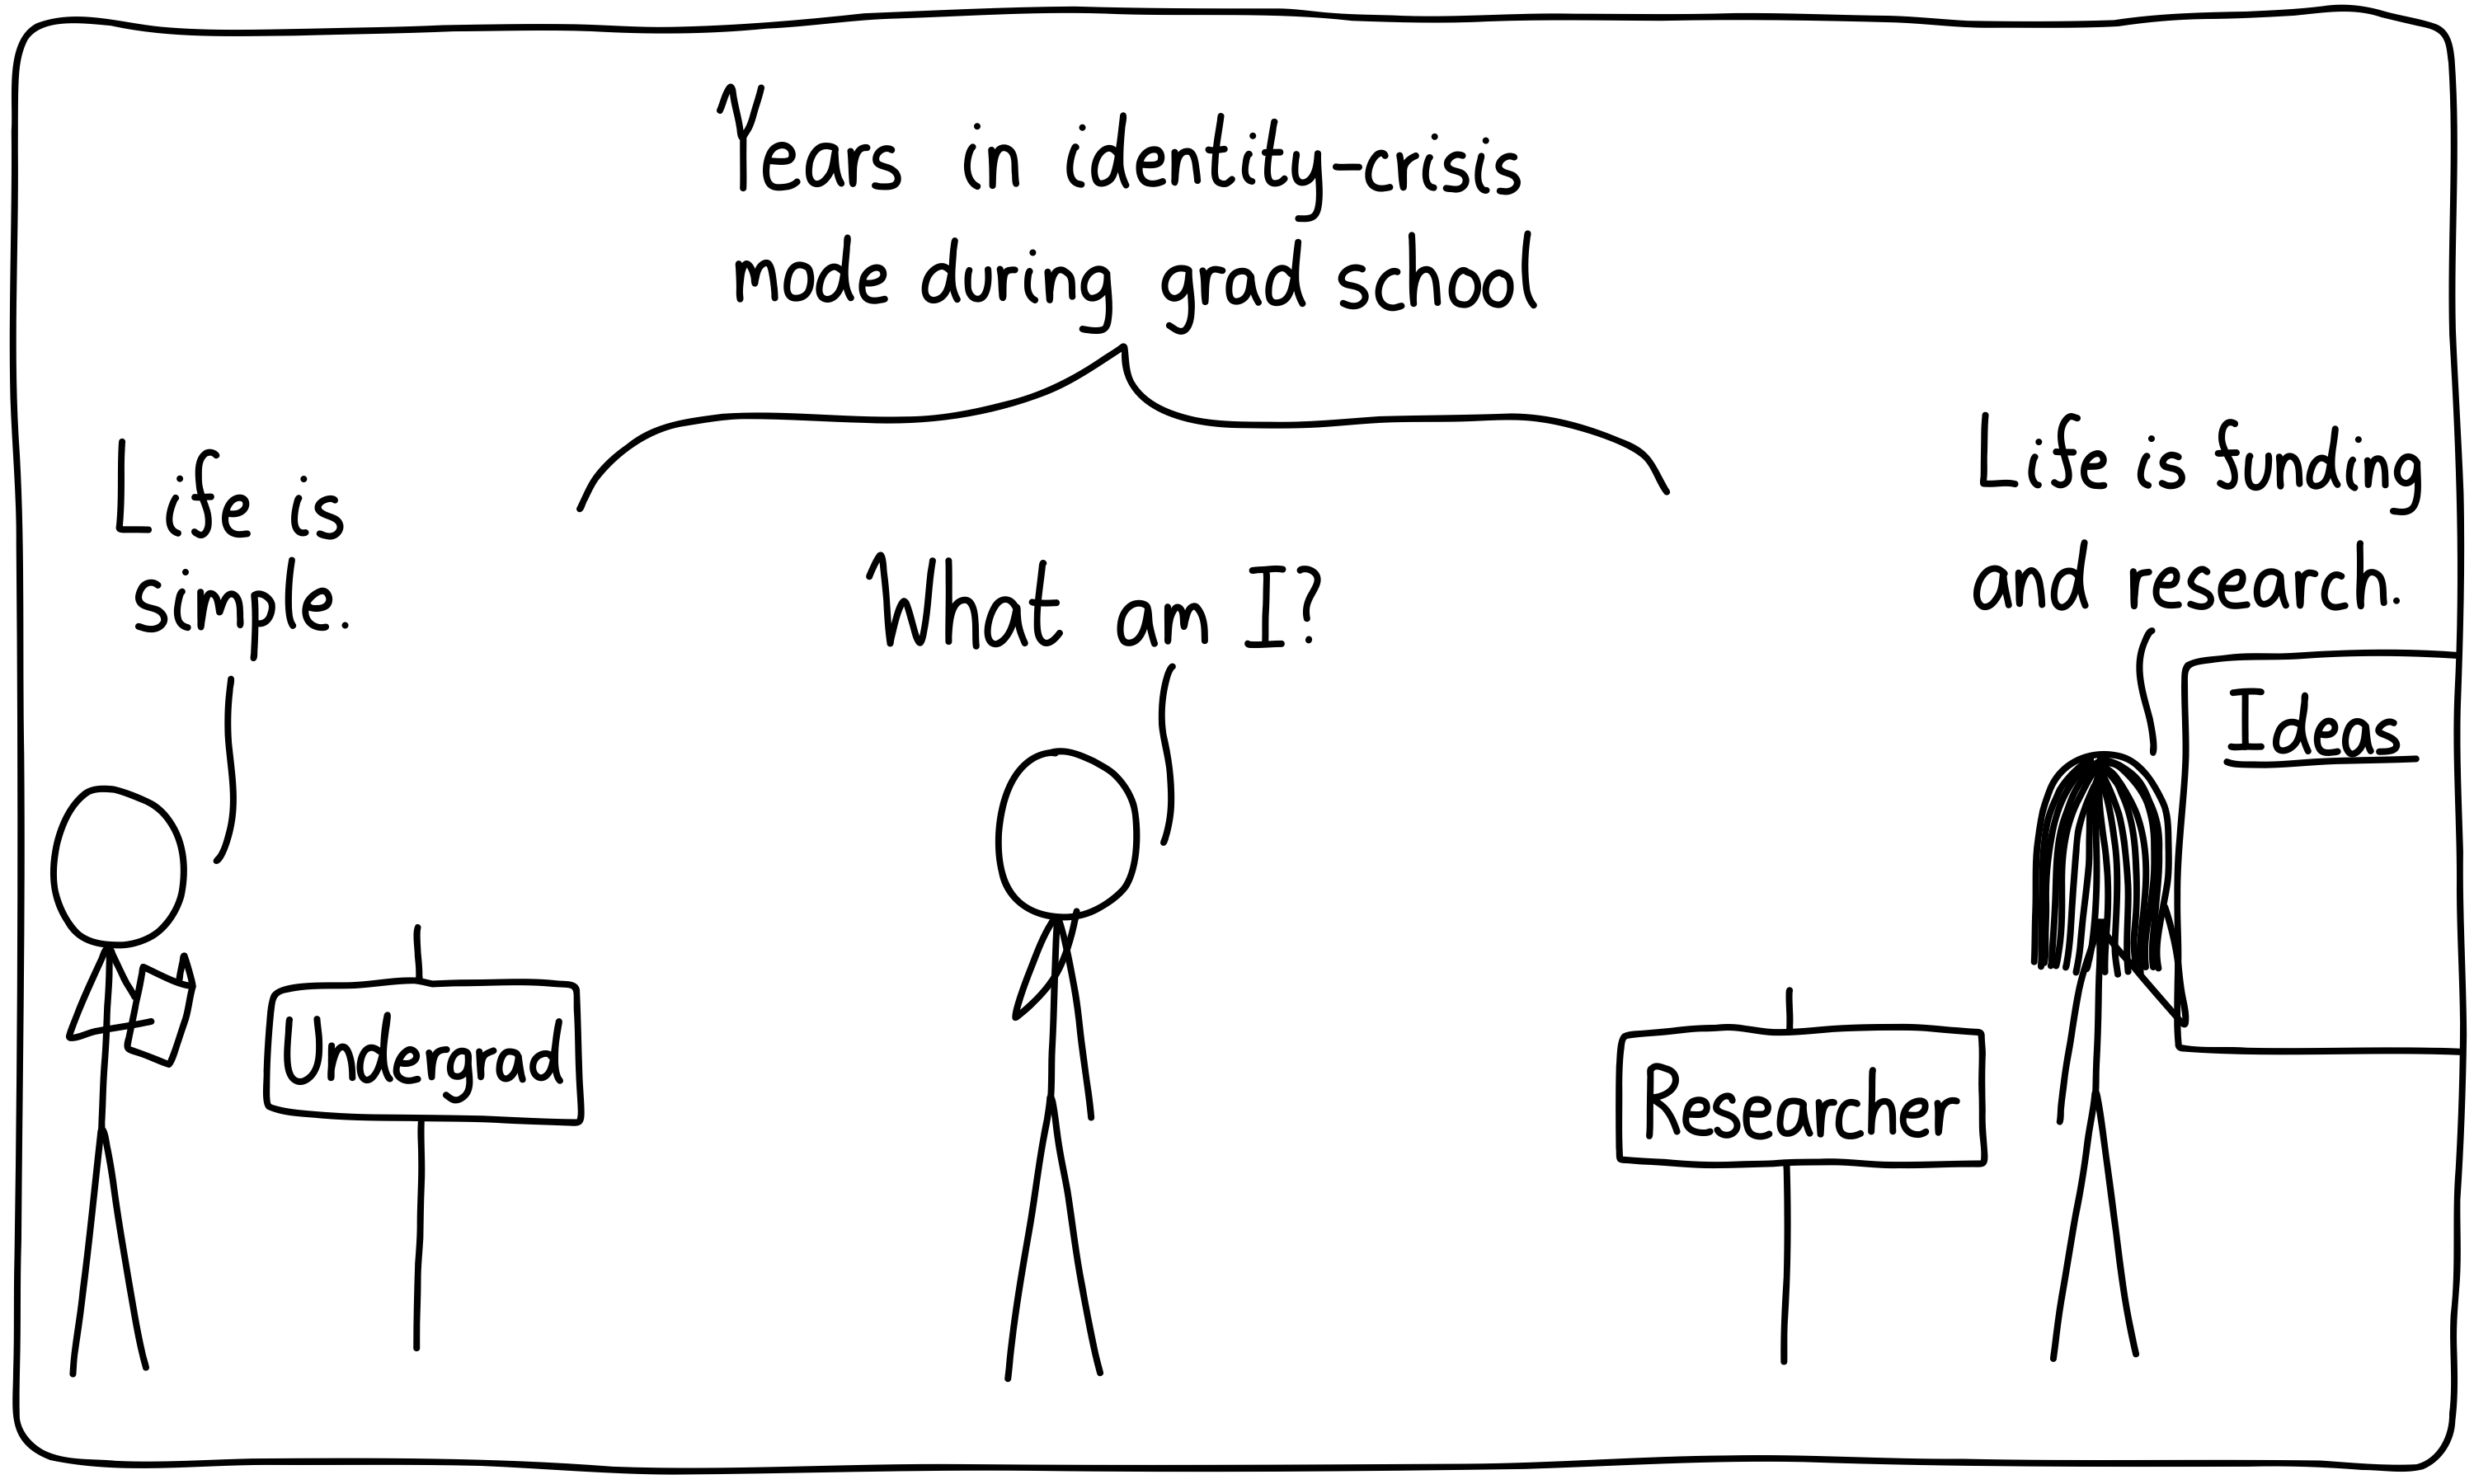 Three people, each at a different stage of their careers. On the left is an undergrad, on the right is a researcher, and in the middle is a graduate student with an identity crisis.